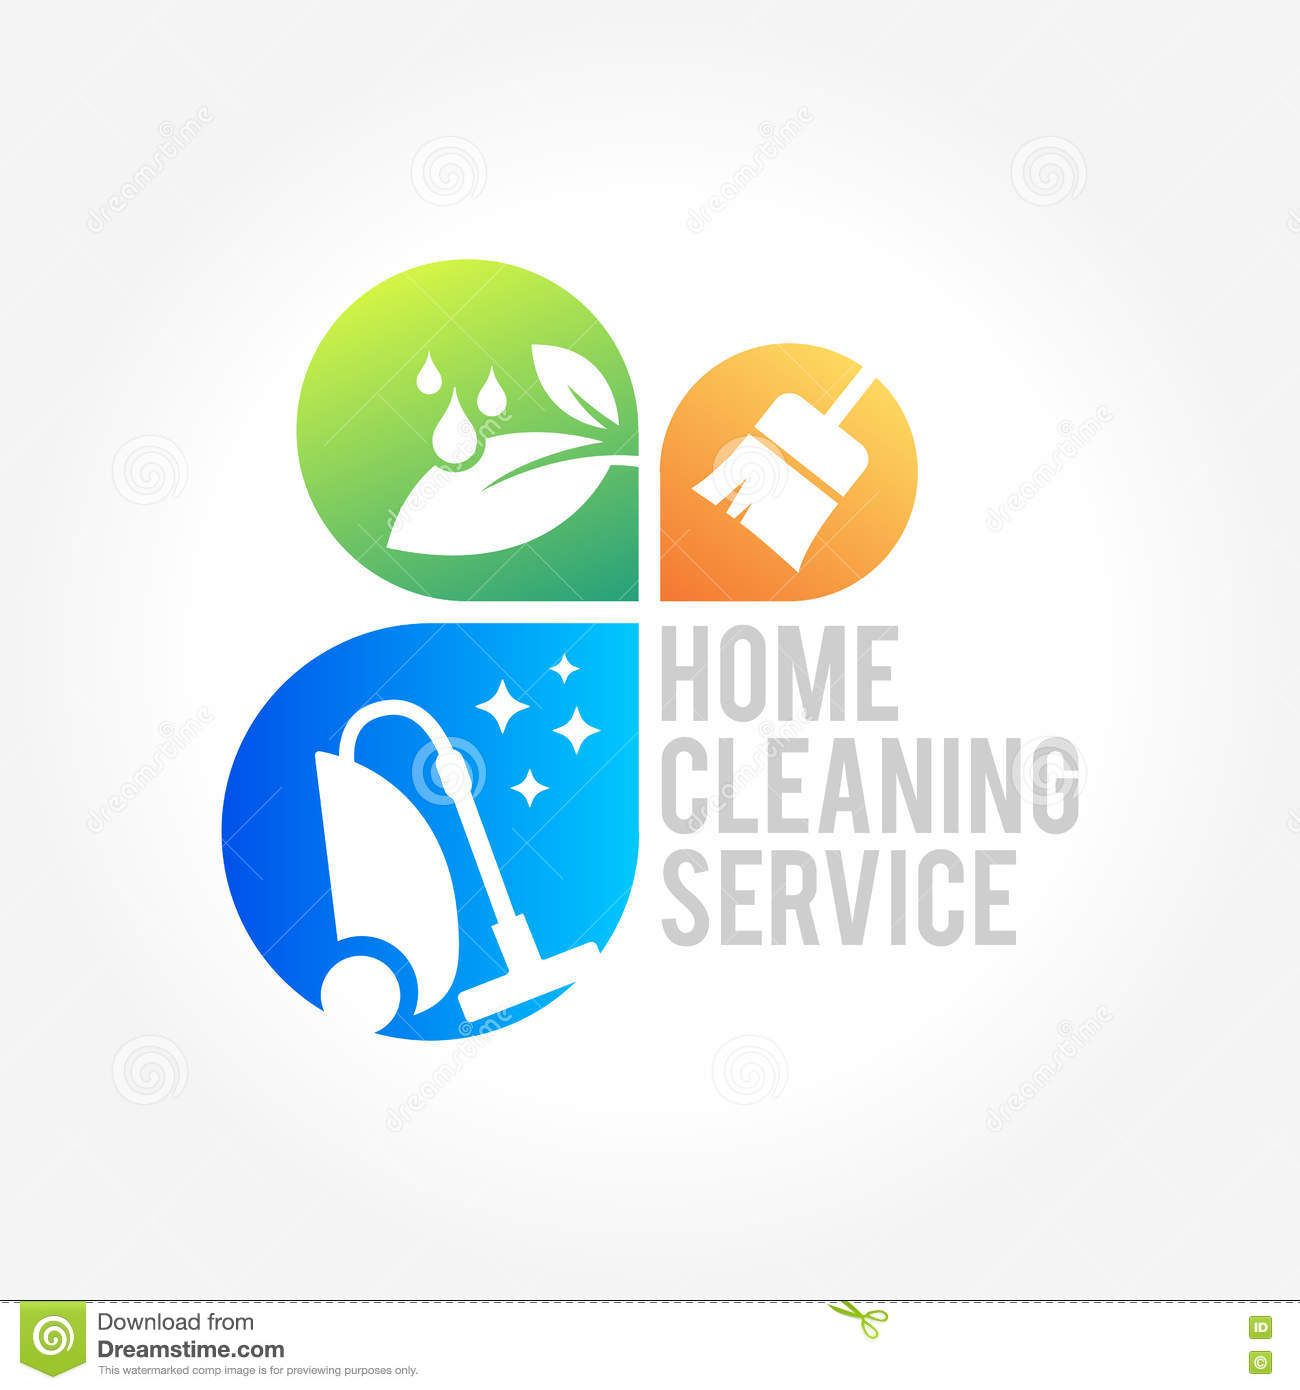 Pin By Jennifer On Business Ideas Cleaning Logo Logos House